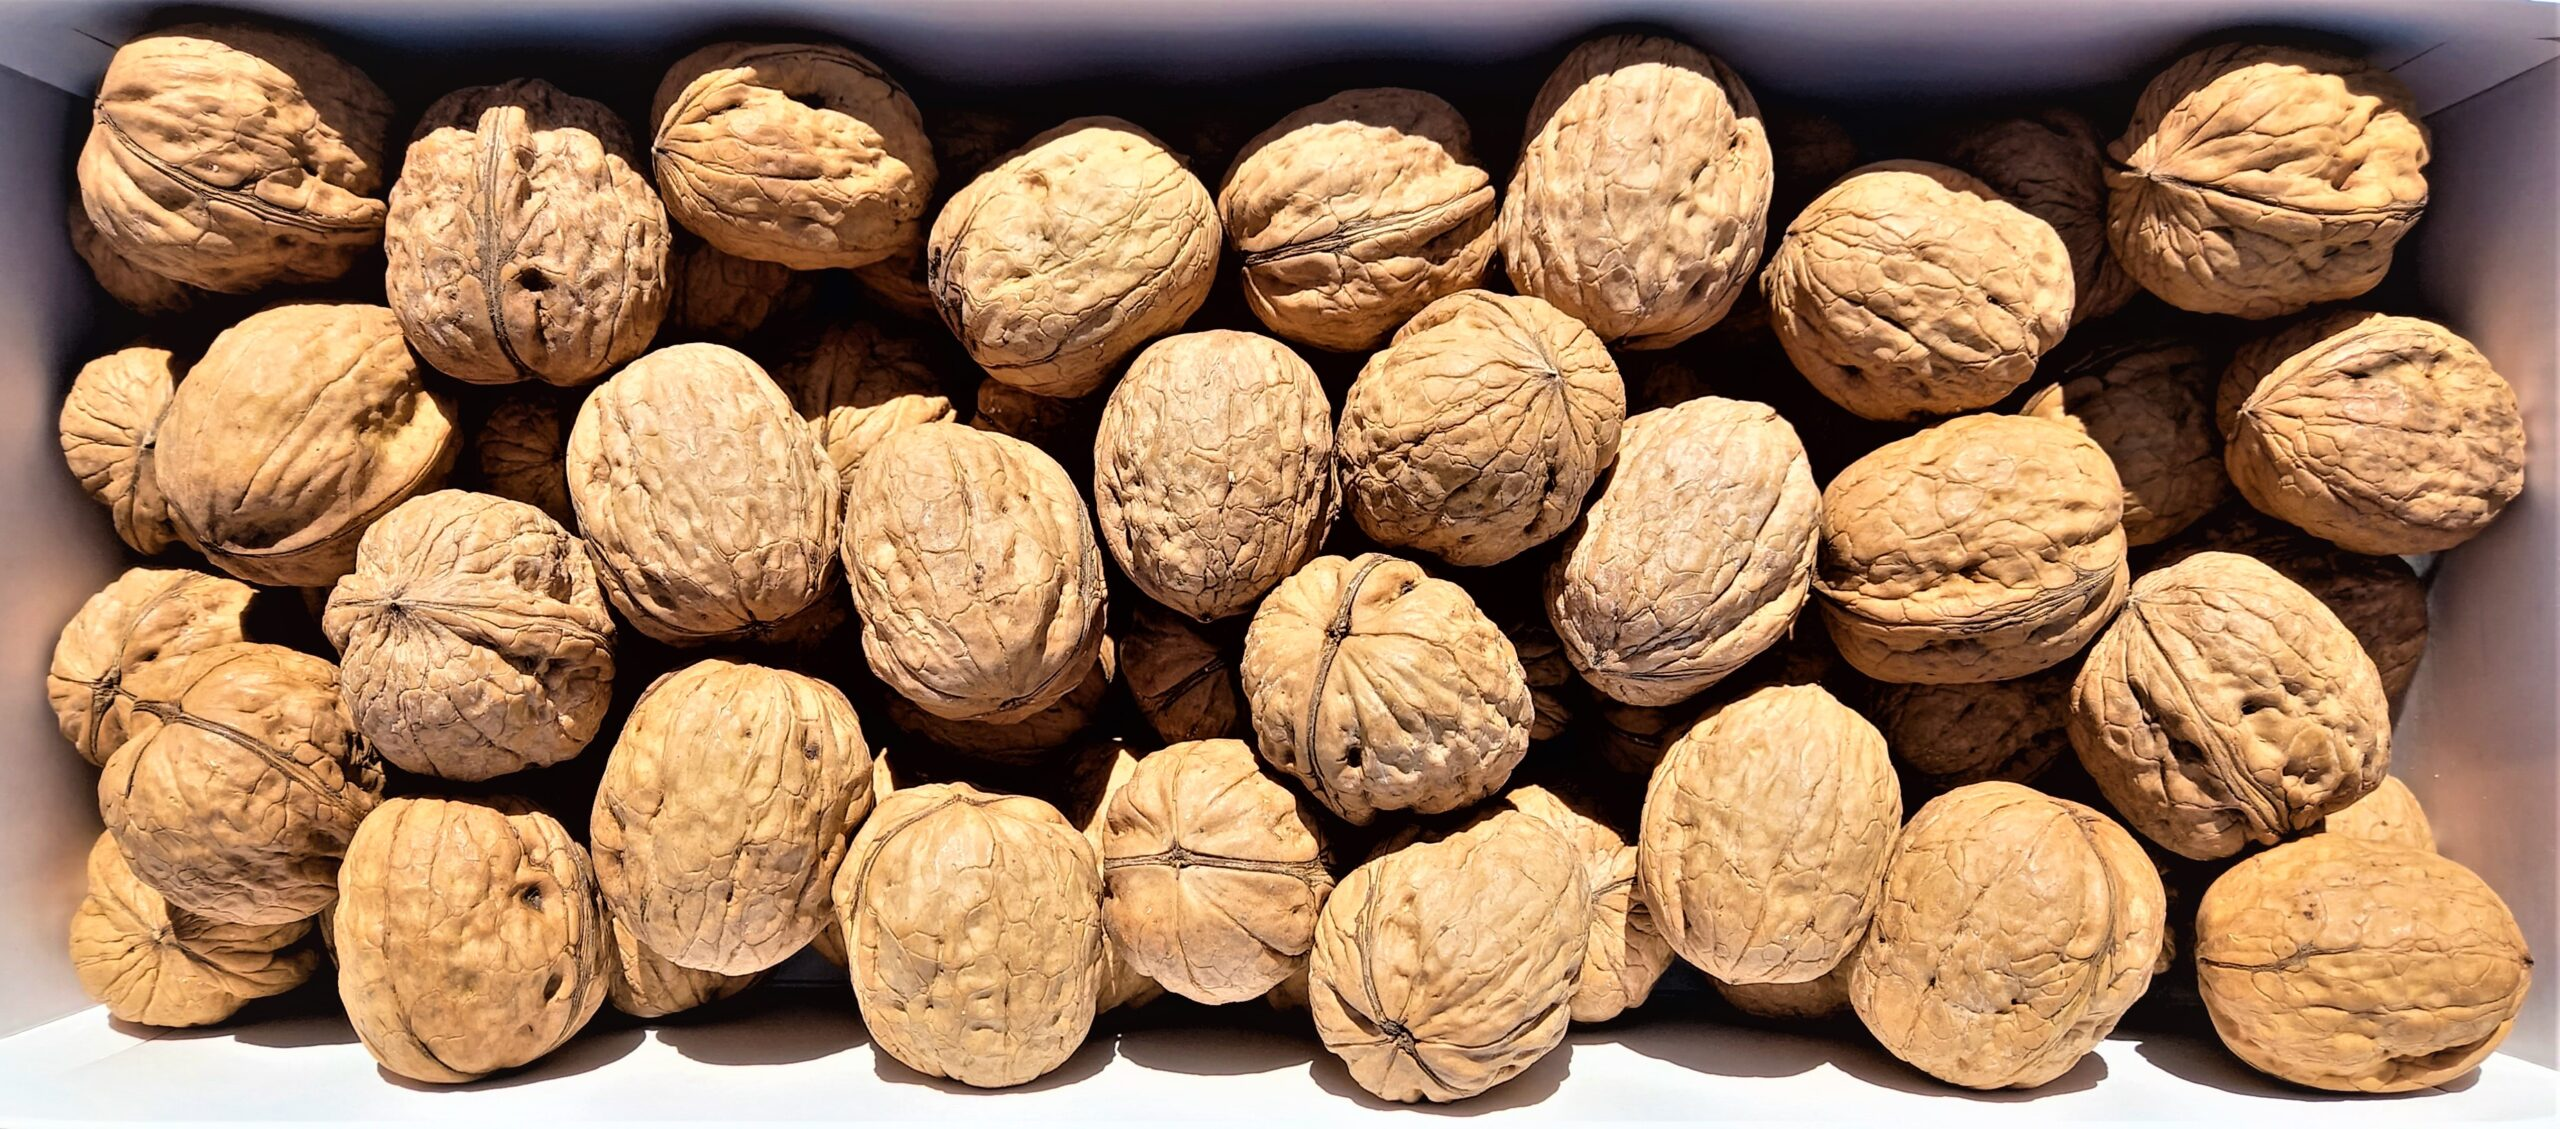 The knowledge of walnuts